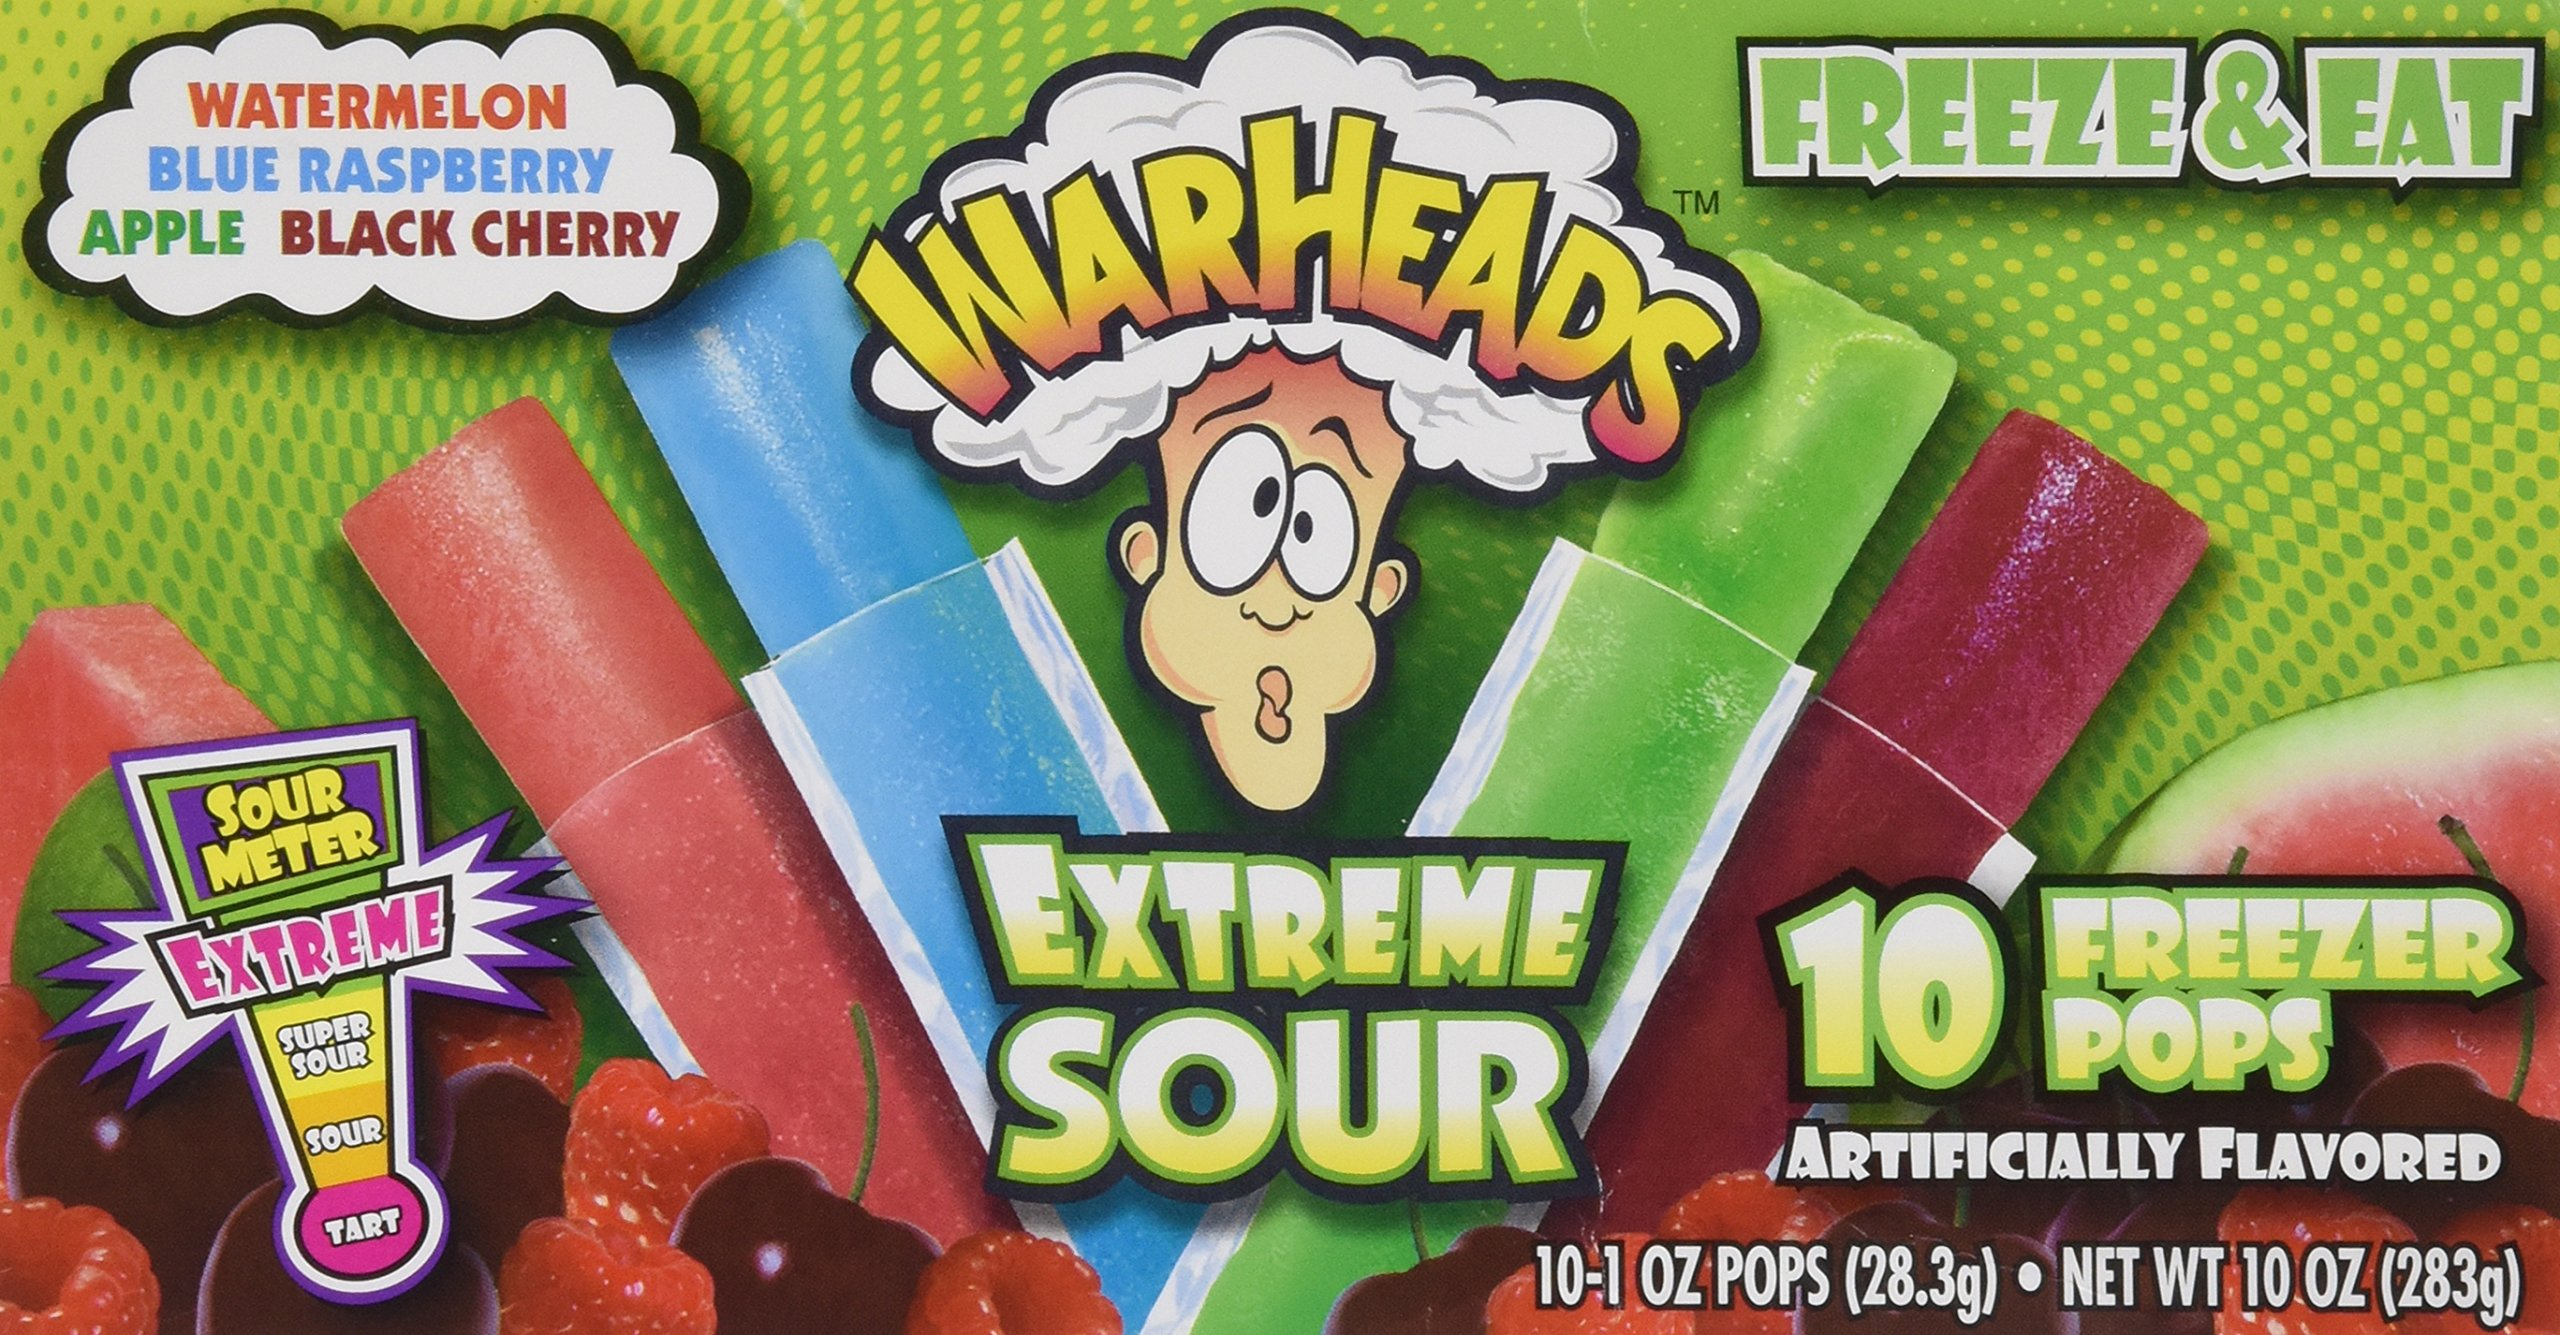 Warheads Extreme Sour 10 Freezer Pops (Pack of 3)